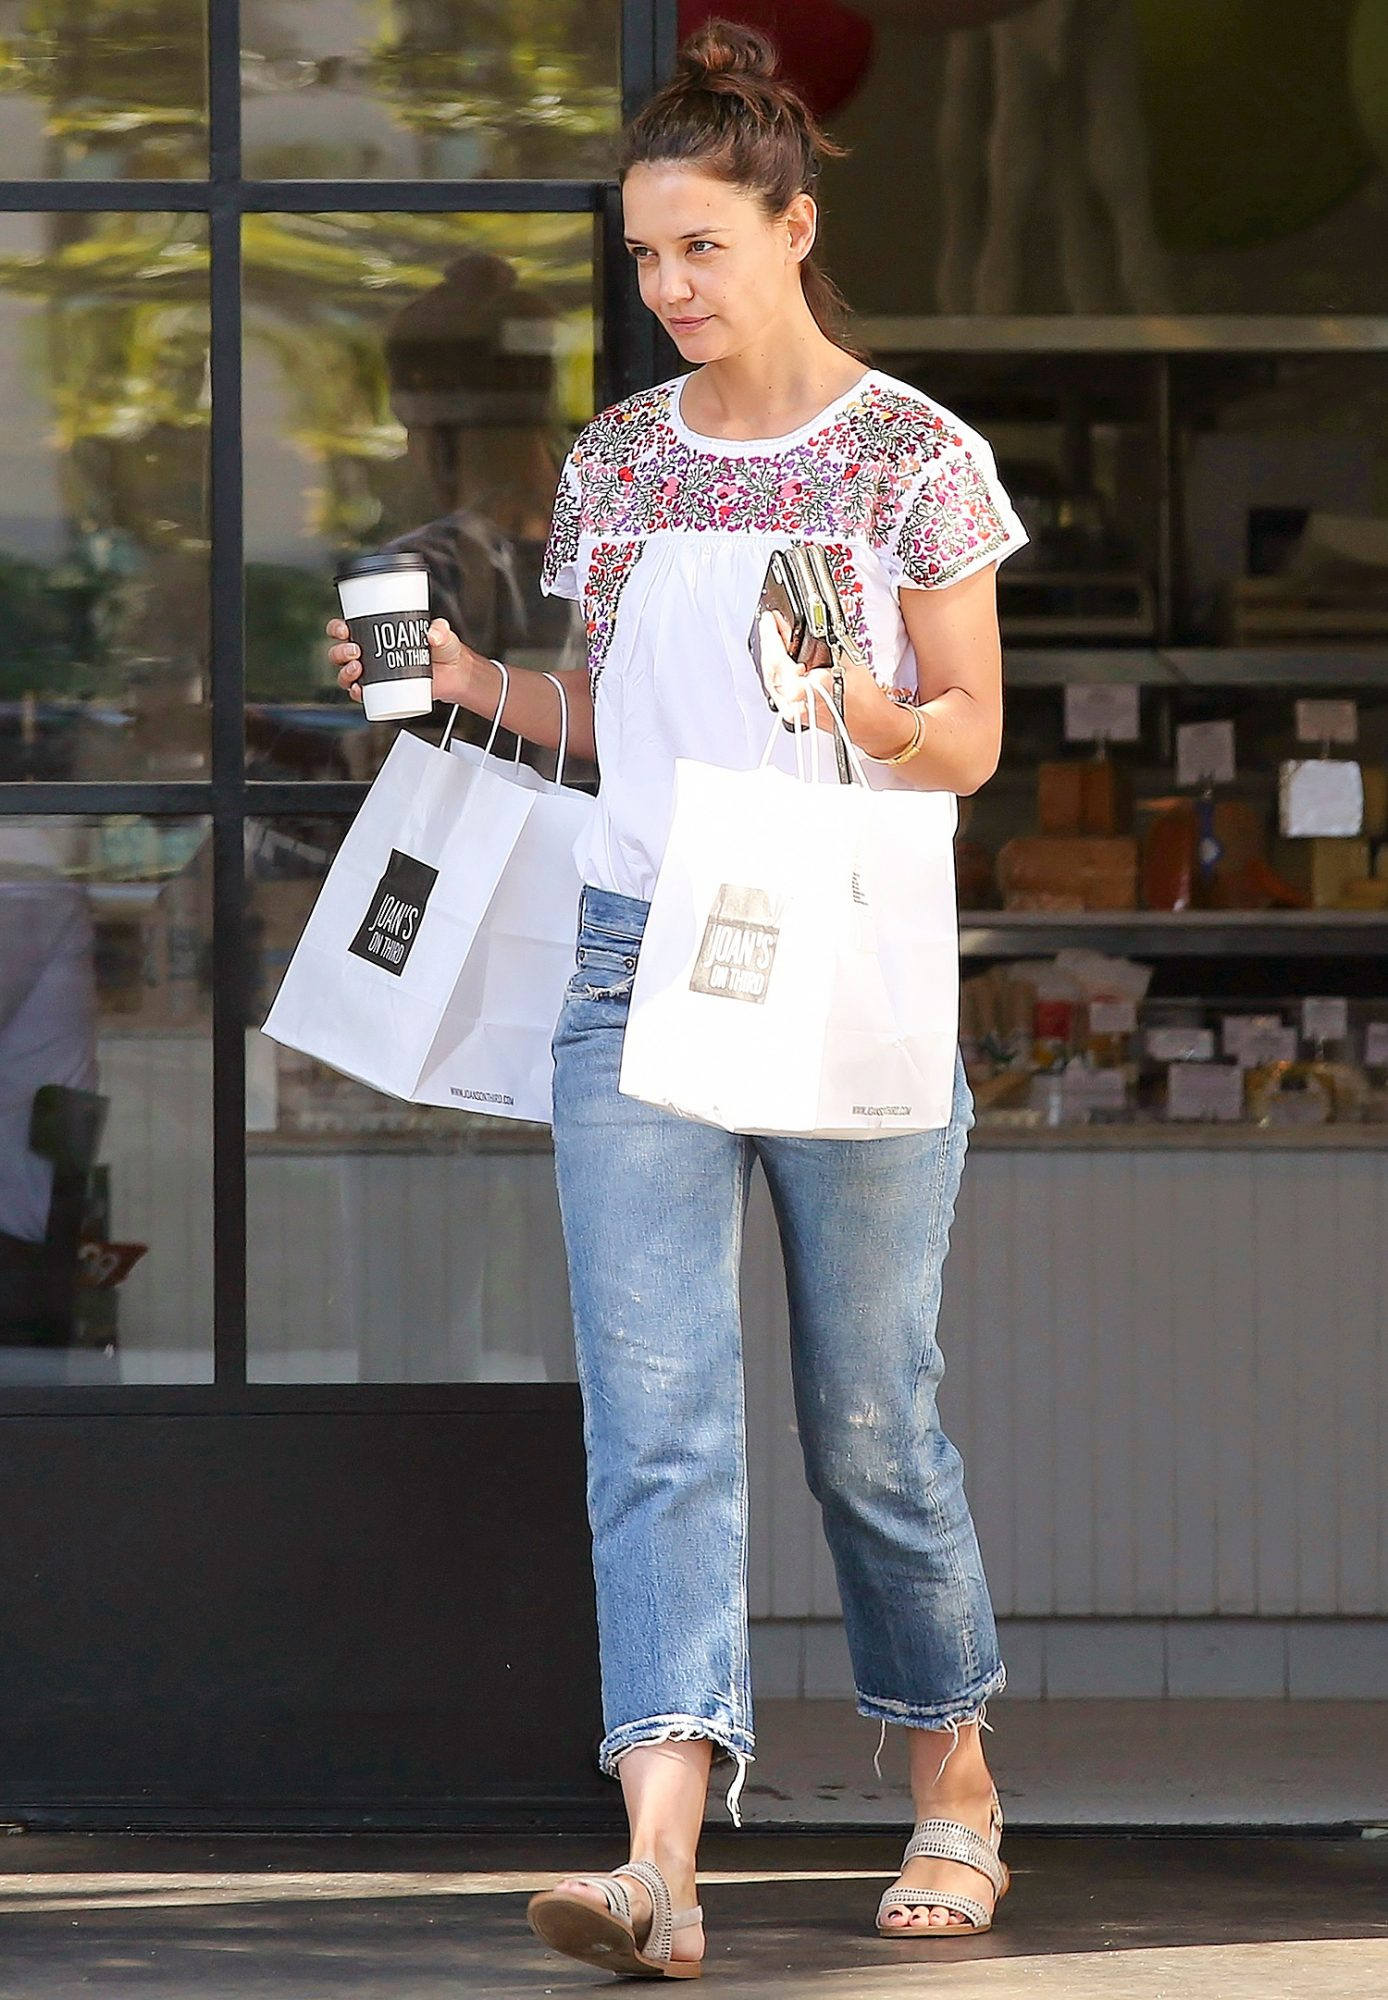 EXCLUSIVE: Katie Holmes has her hands full whilst leaving 'Joan's on Third' in Los Angeles, California